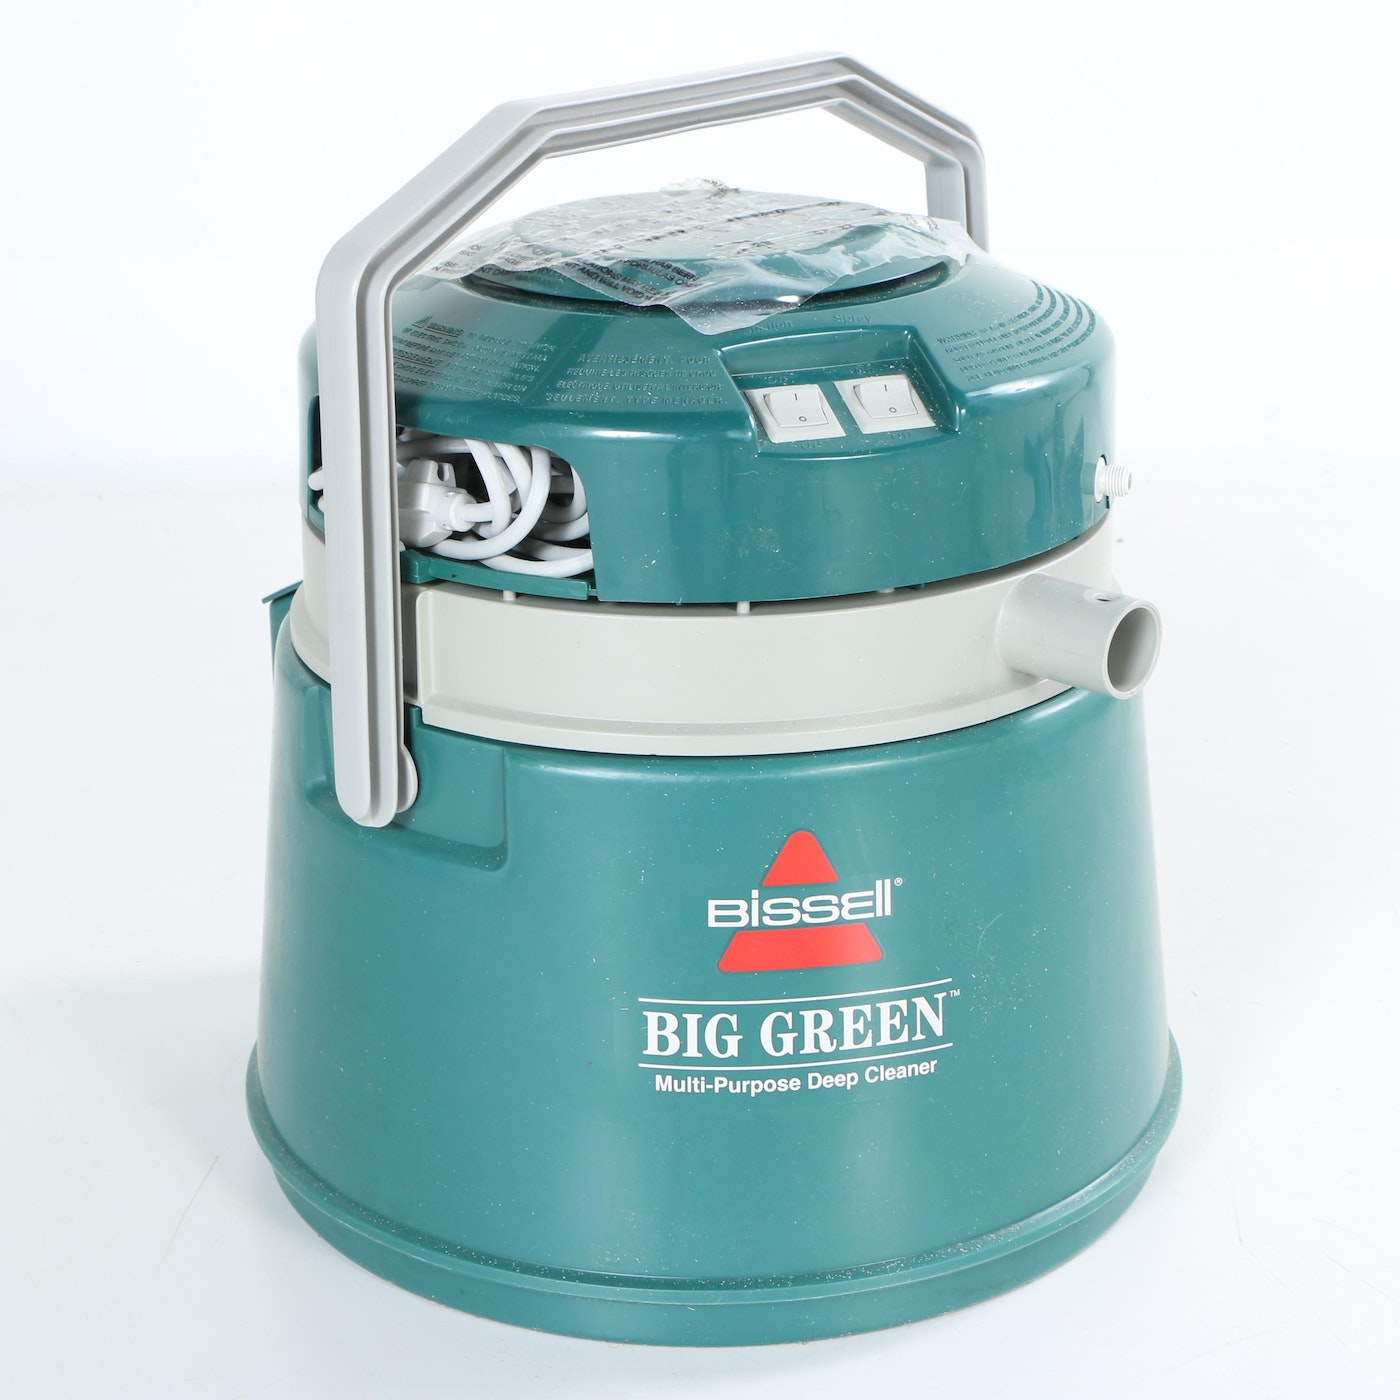 Bissell Big Green Multi Purpose Deep Cleaner Ebth